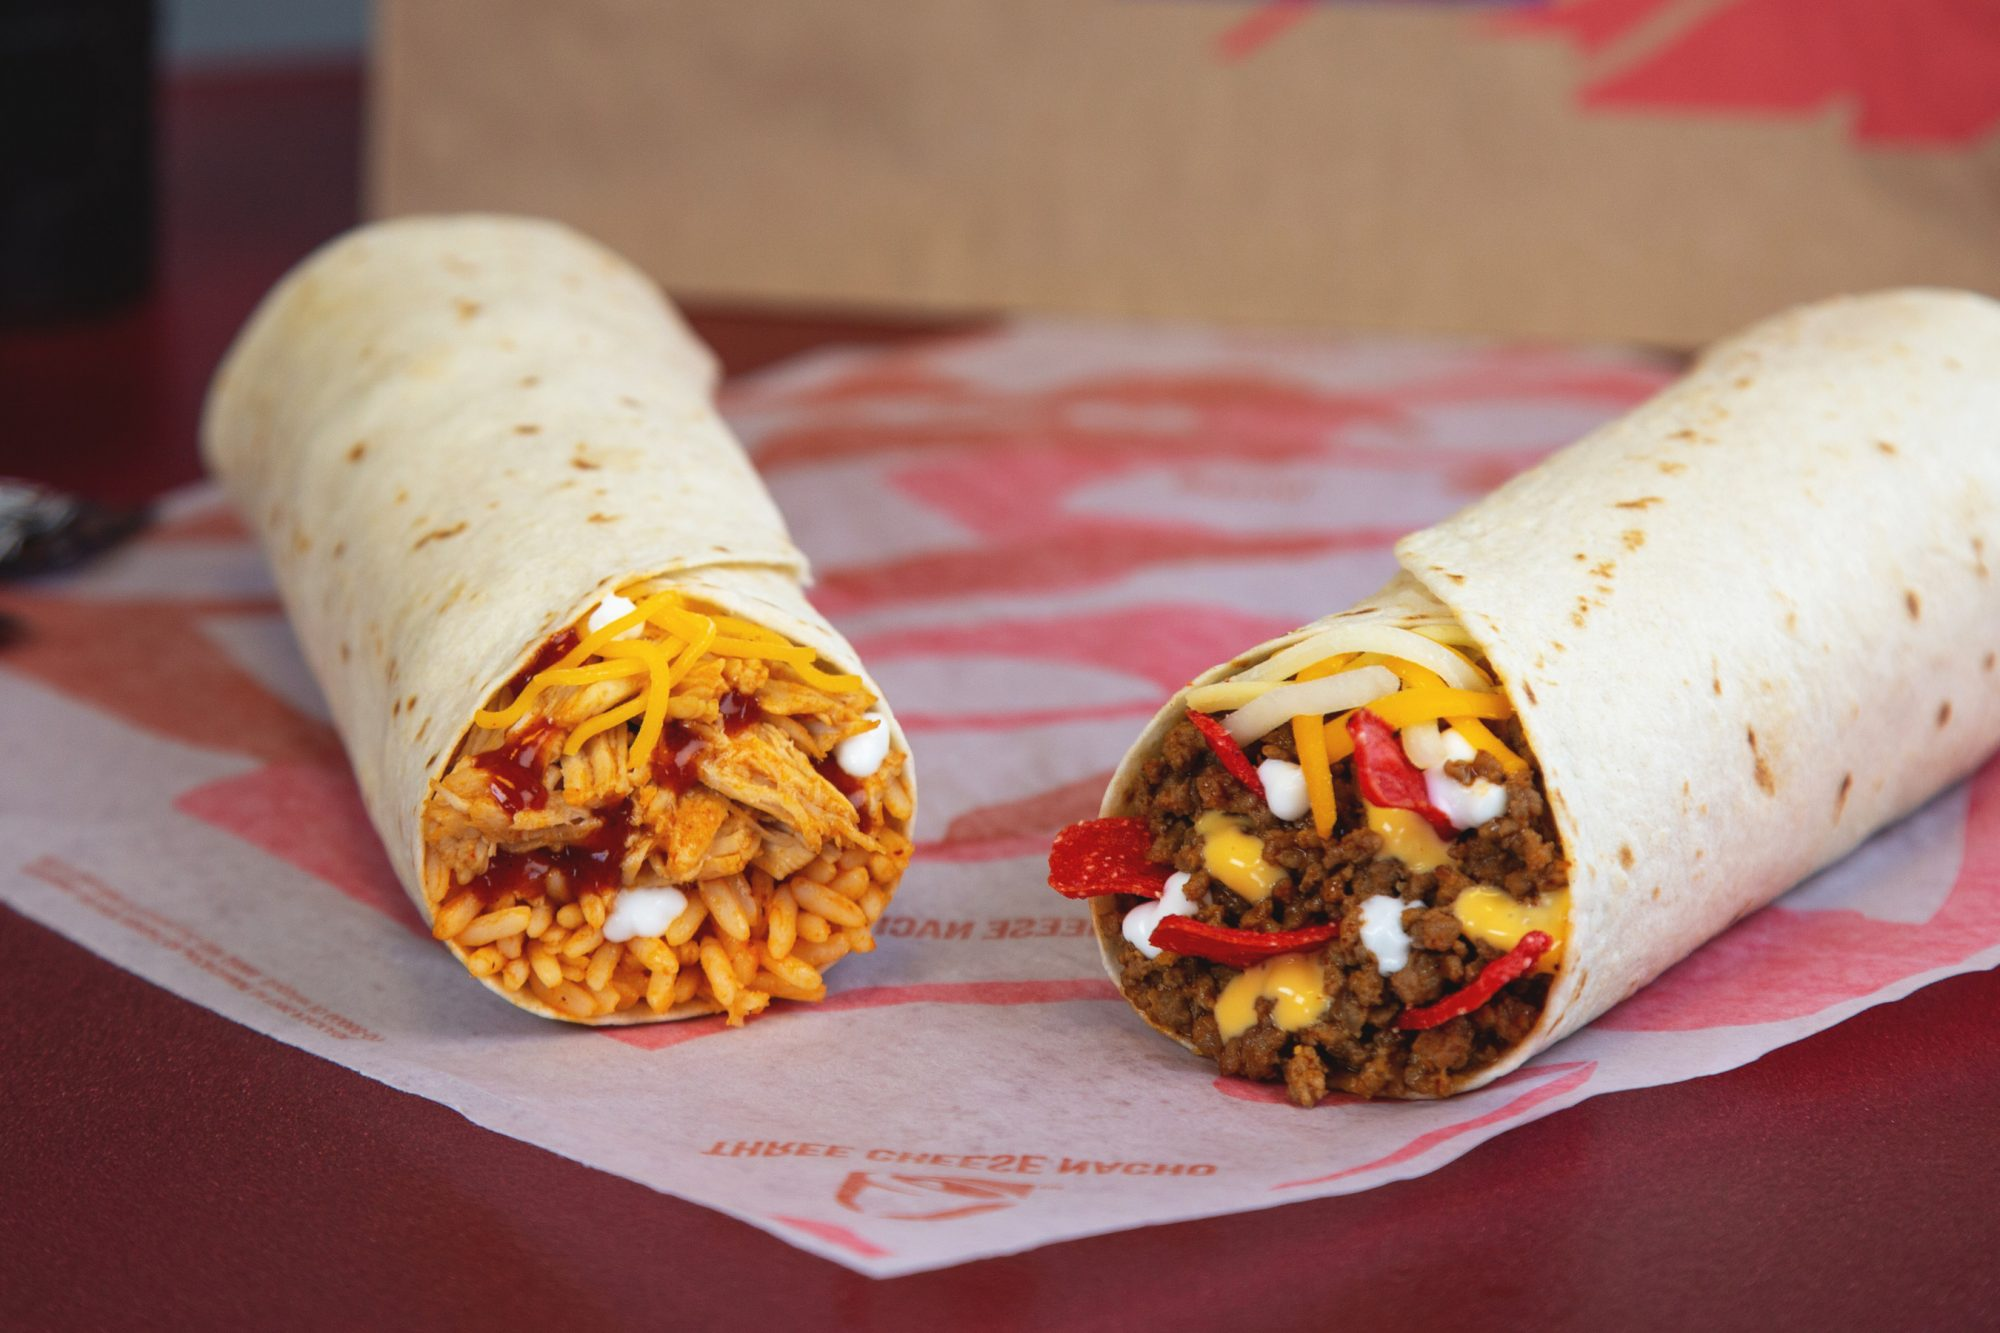 Taco Bell Unveils Massive $1 Burritos as Part of New Value Menu